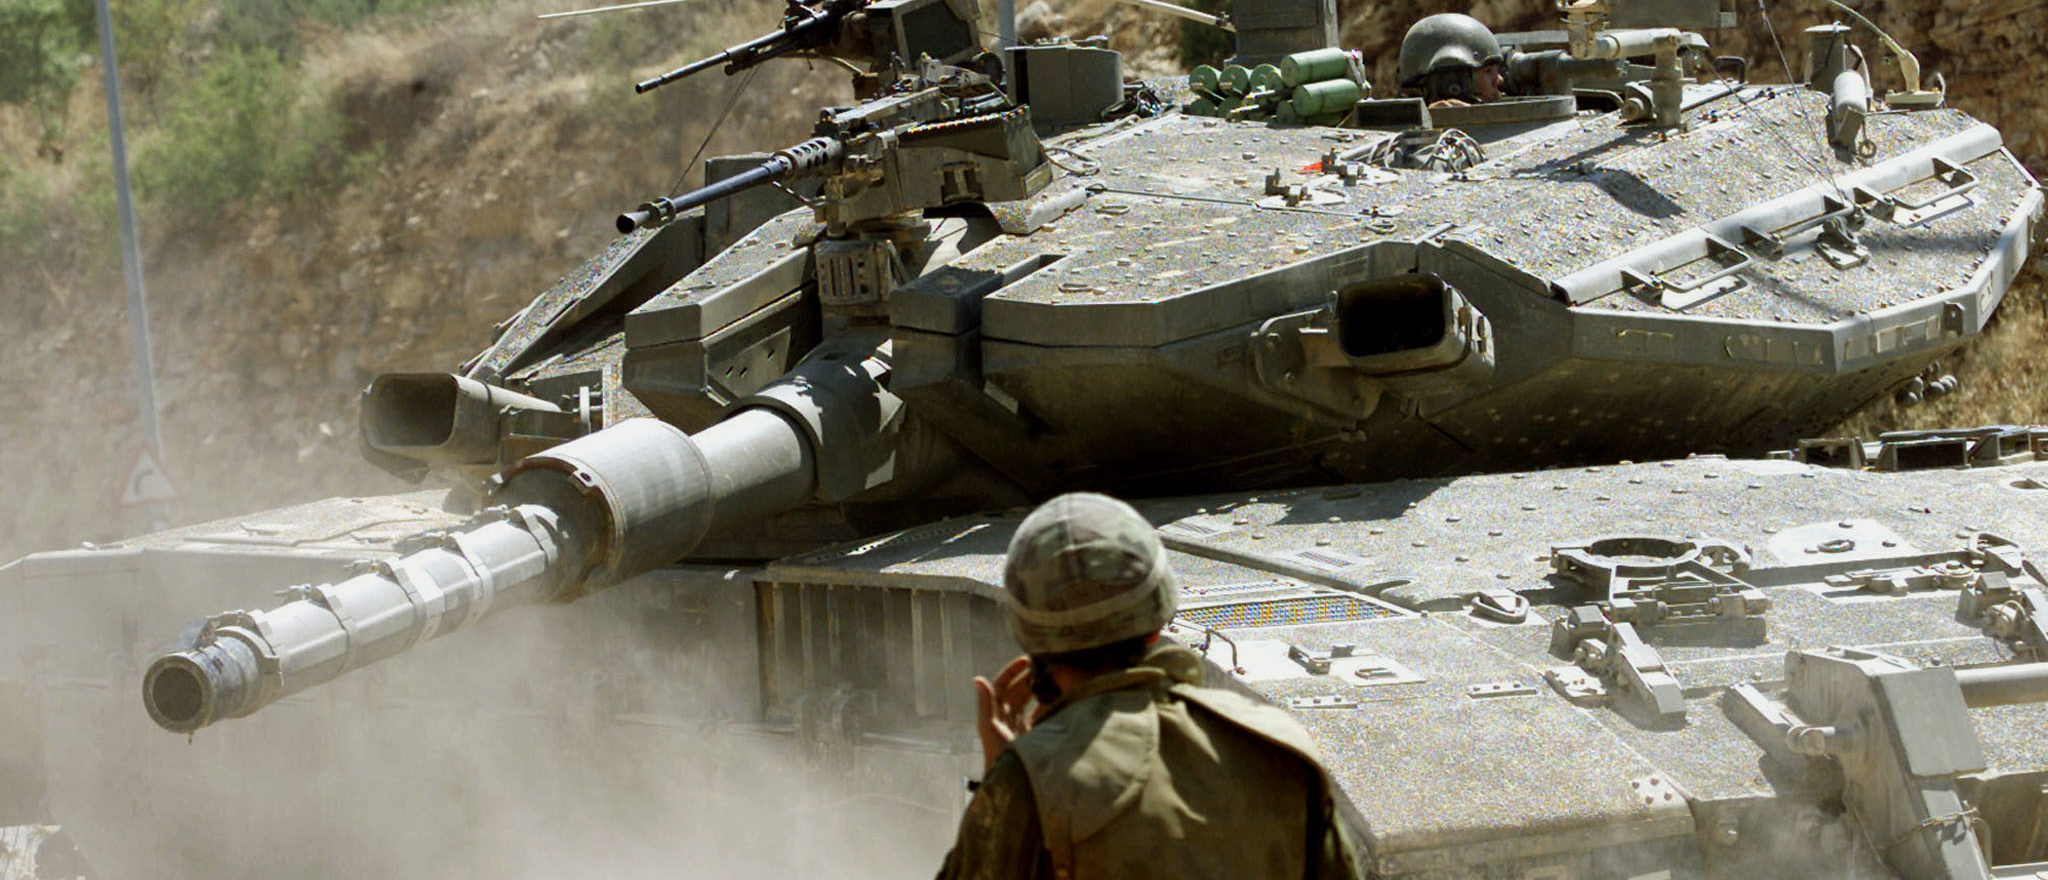 An Israeli soldier guides a Merkava tank into position outskirts of El Hader, 15 km south of Jerusalem June 23, 2002. Israeli armour rumbled into another Palestinian city on Sunday and the army said it was calling up a brigade of reservists under emergency mobilization orders as part of what it was described as a war against terrorism. REUTERS/Gil Cohen Magen YB/CLH/ - RP3DRIAVMEAA